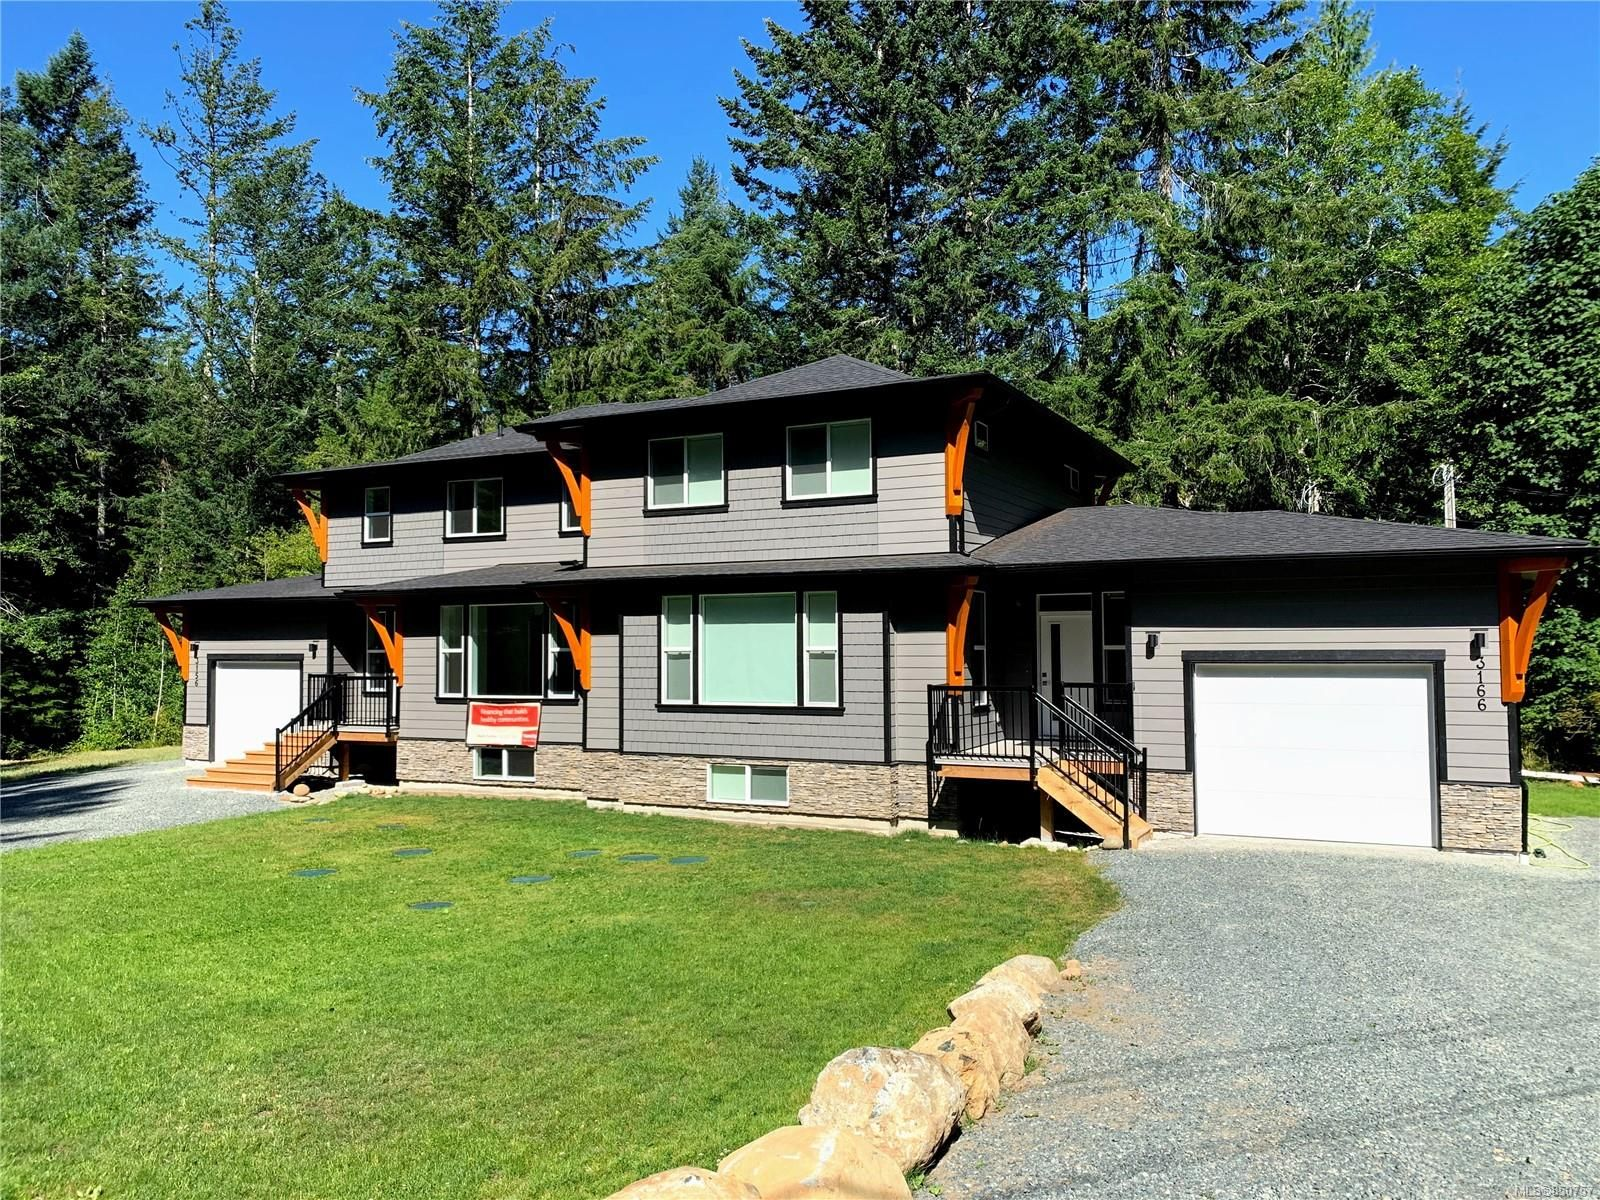 Main Photo: 3166 SLINGSBY Pl in : Sk Otter Point Half Duplex for sale (Sooke)  : MLS®# 850757